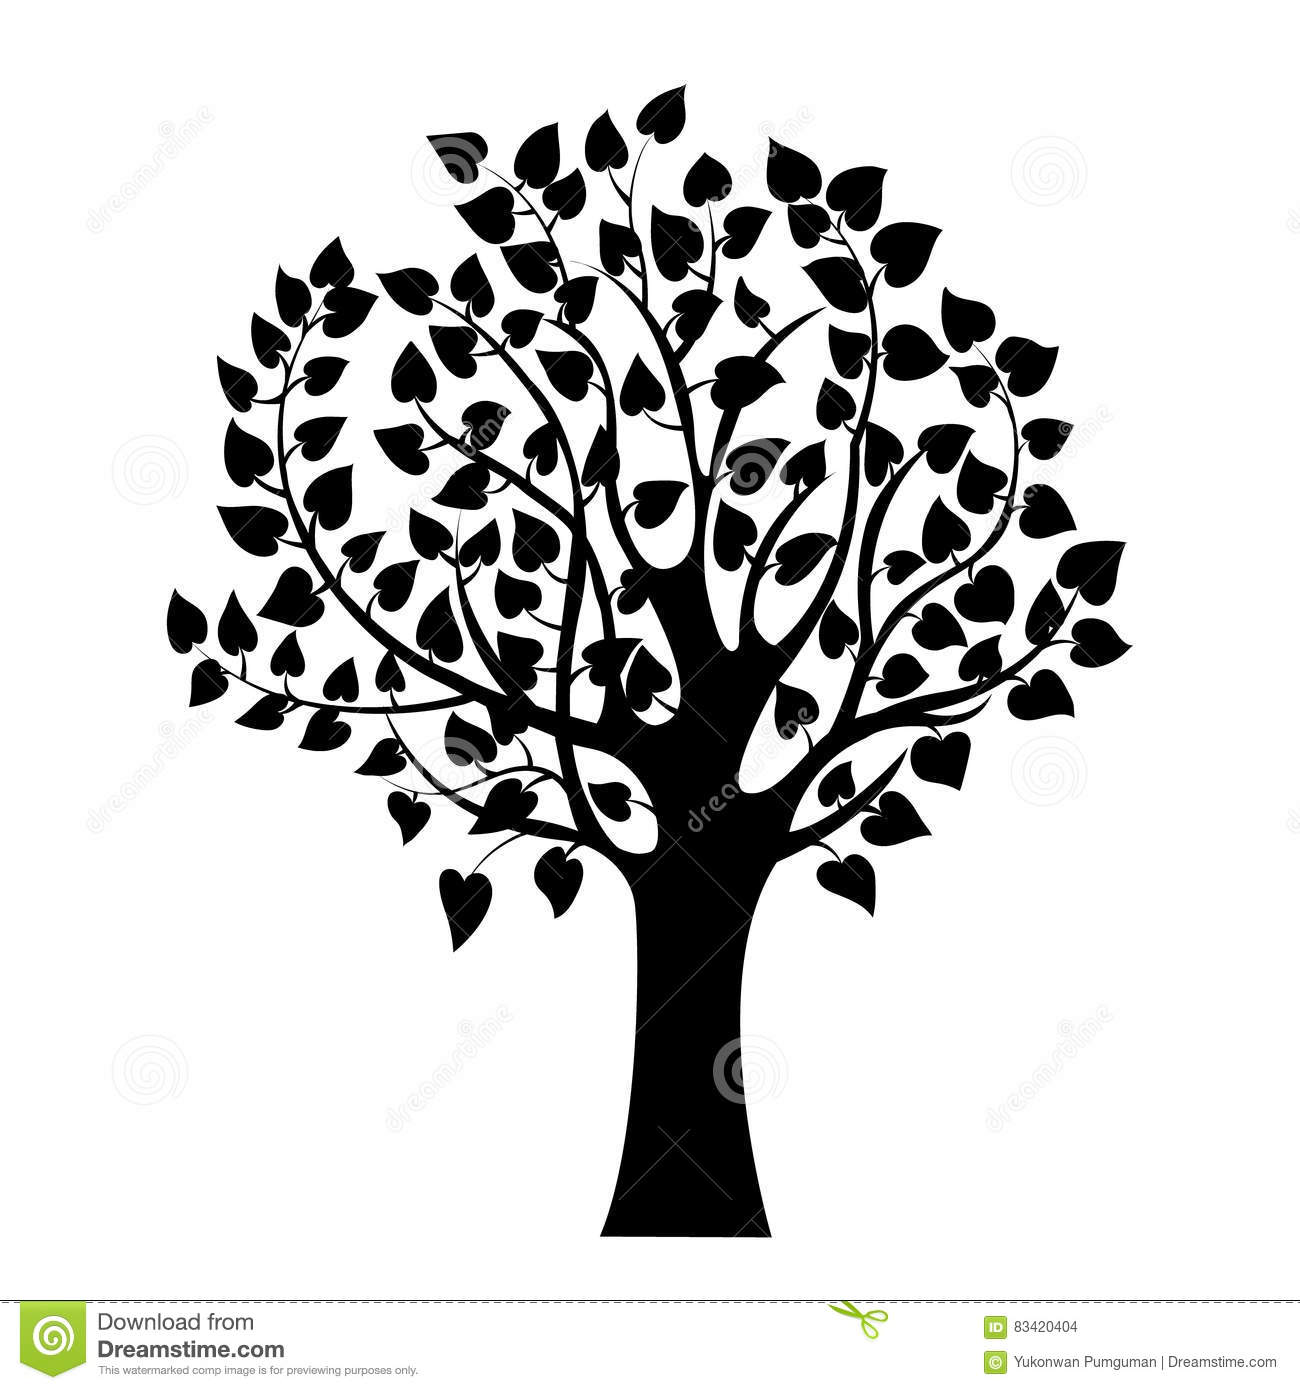 abstract black tree isolated nature symbol silhouette